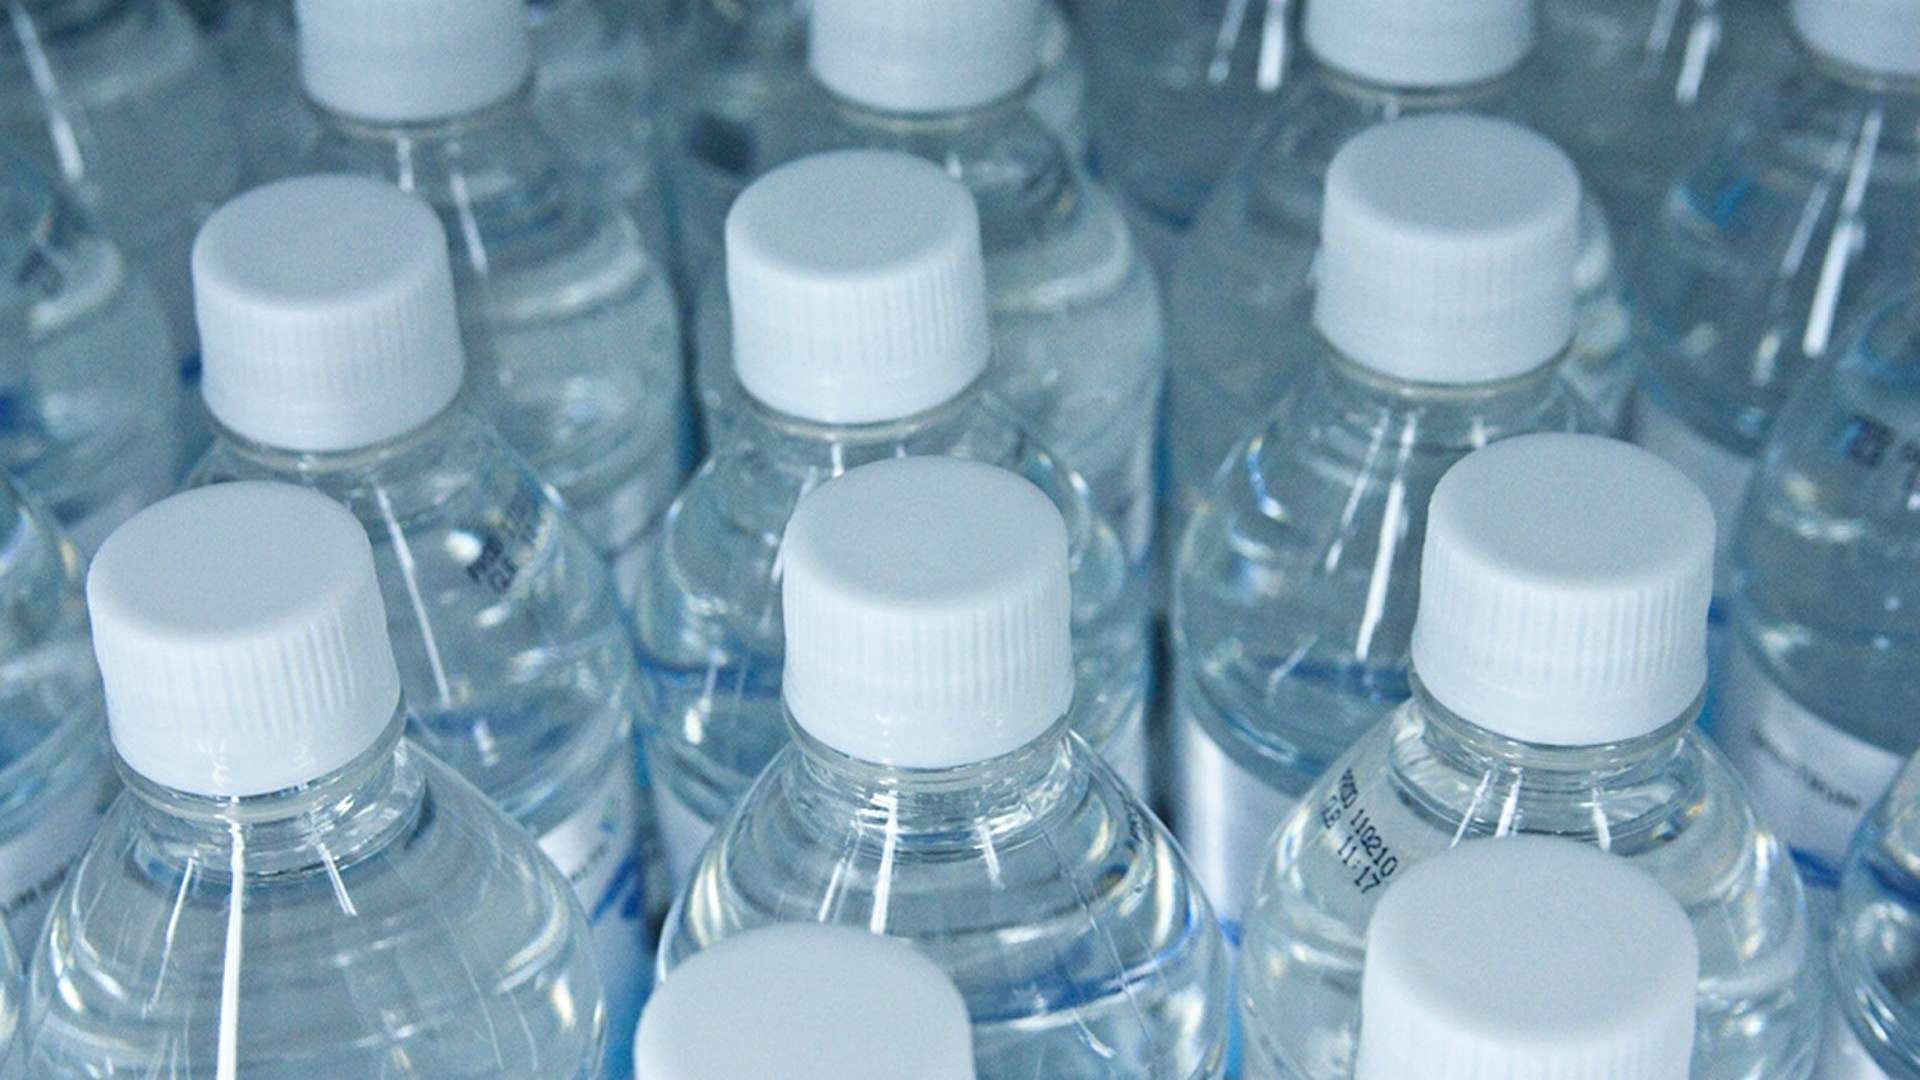 A photo of plastic bottled water